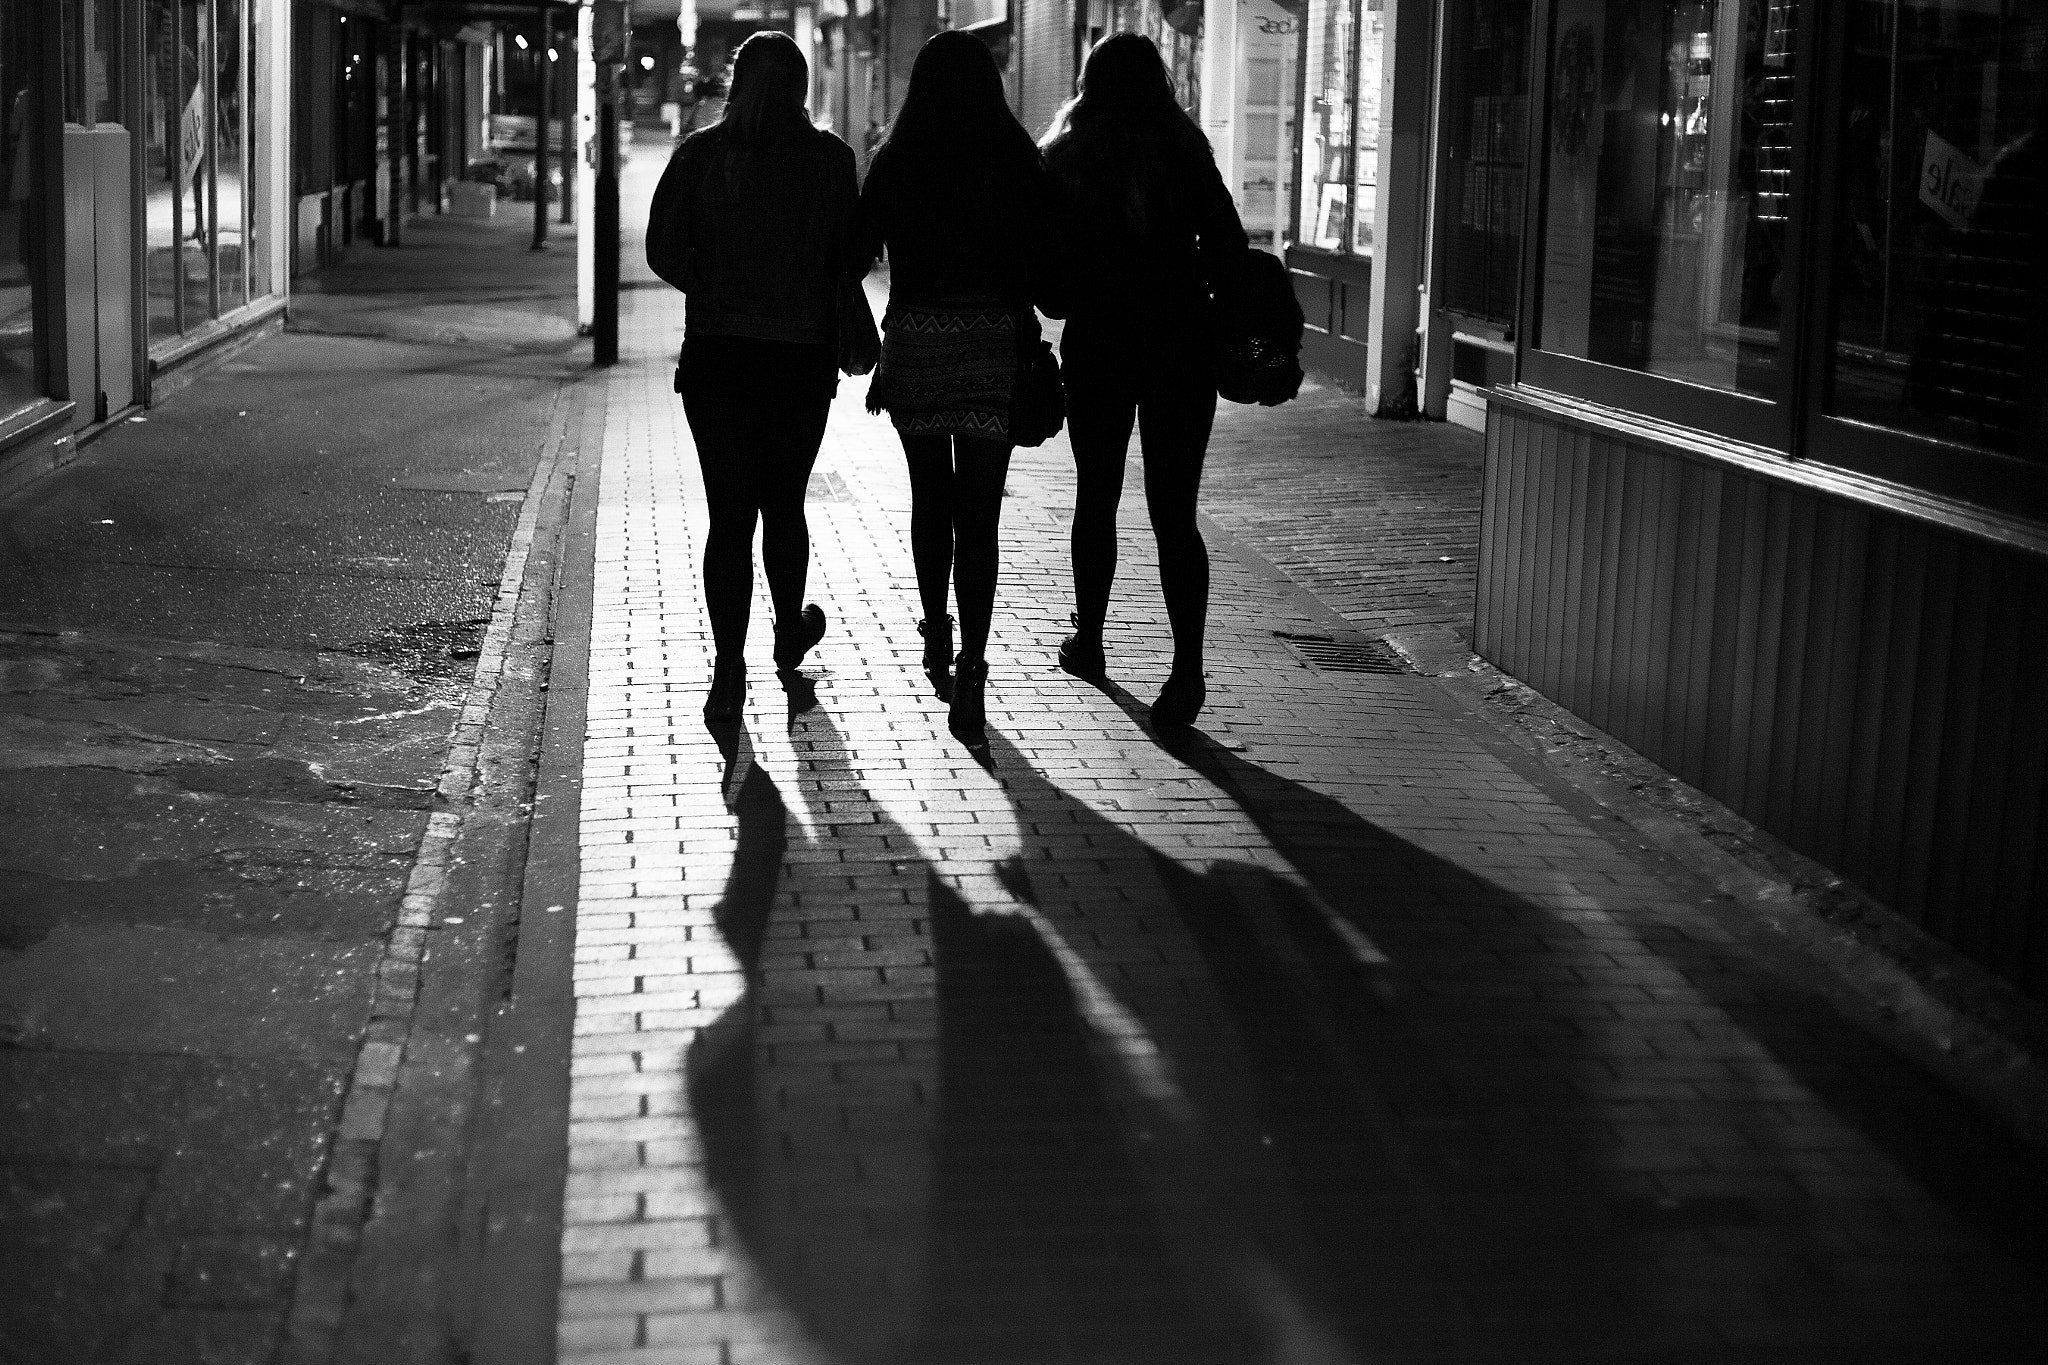 Photograph Girls on the town by Dade Freeman on 500px